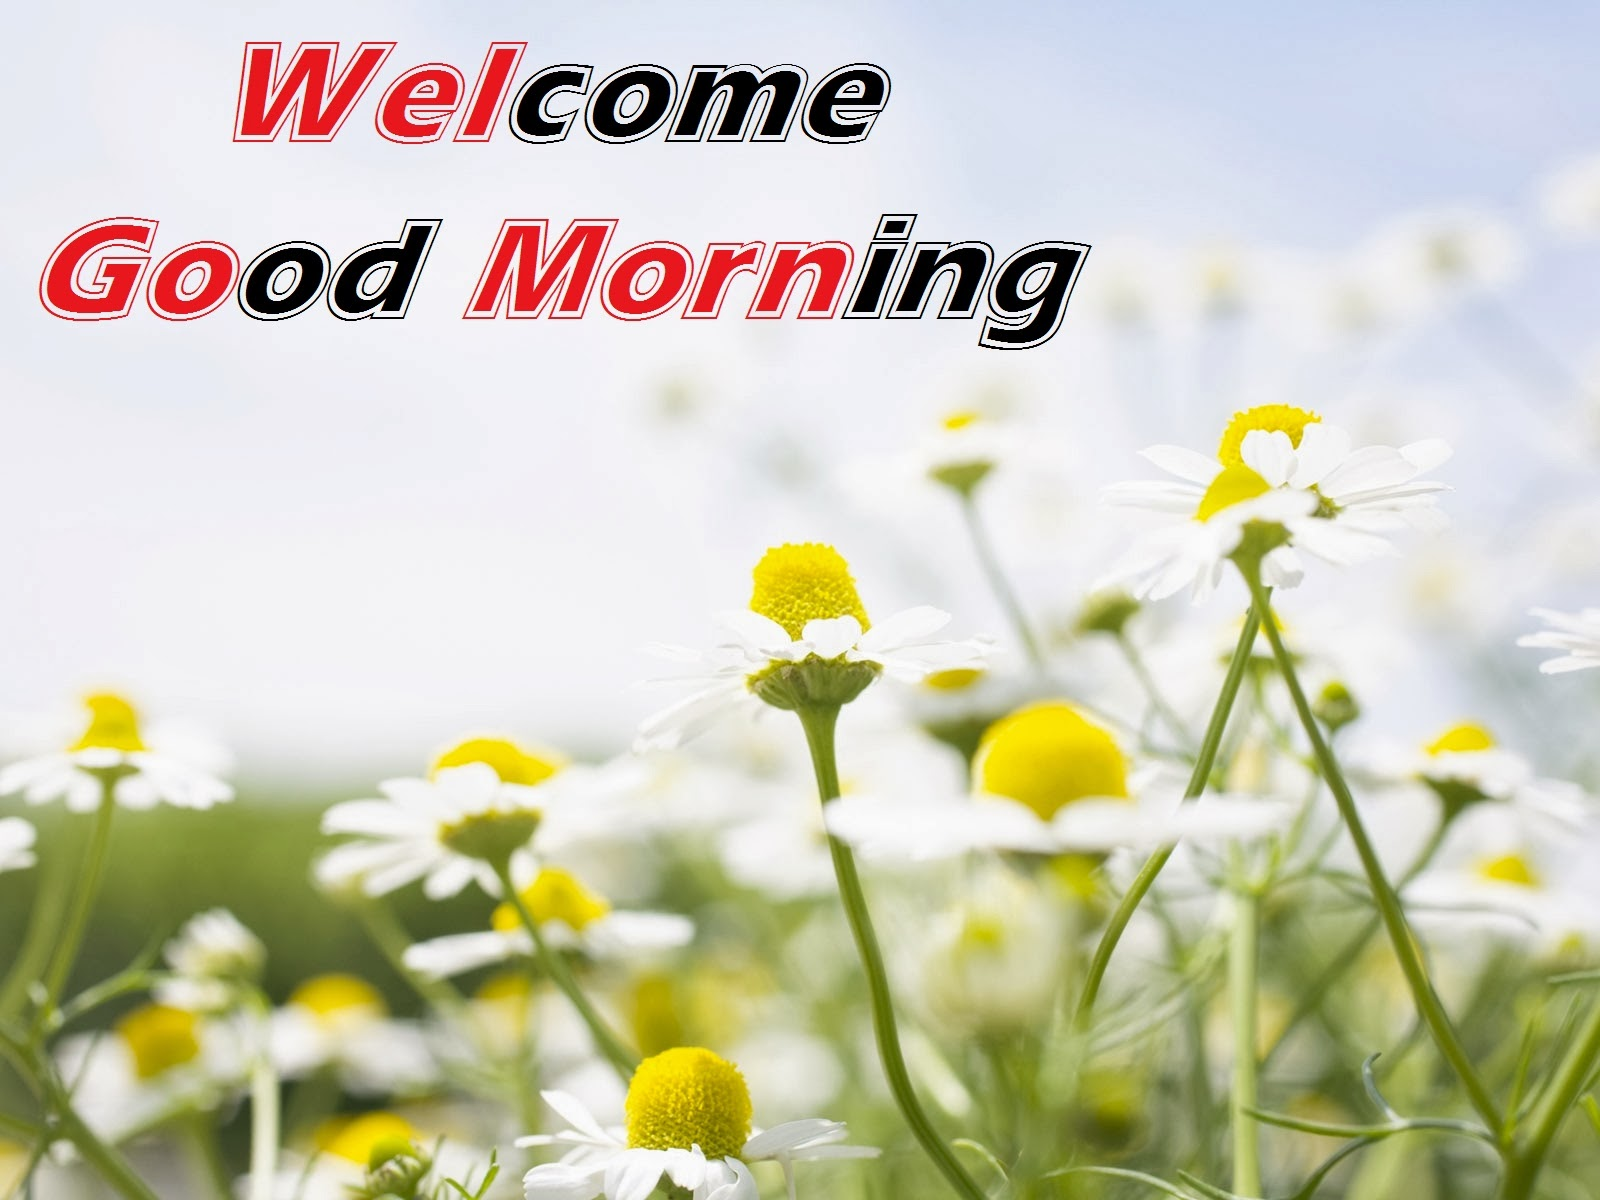 Good Morning All Image Download : Welcome good morning hd cards lovely wallpapers